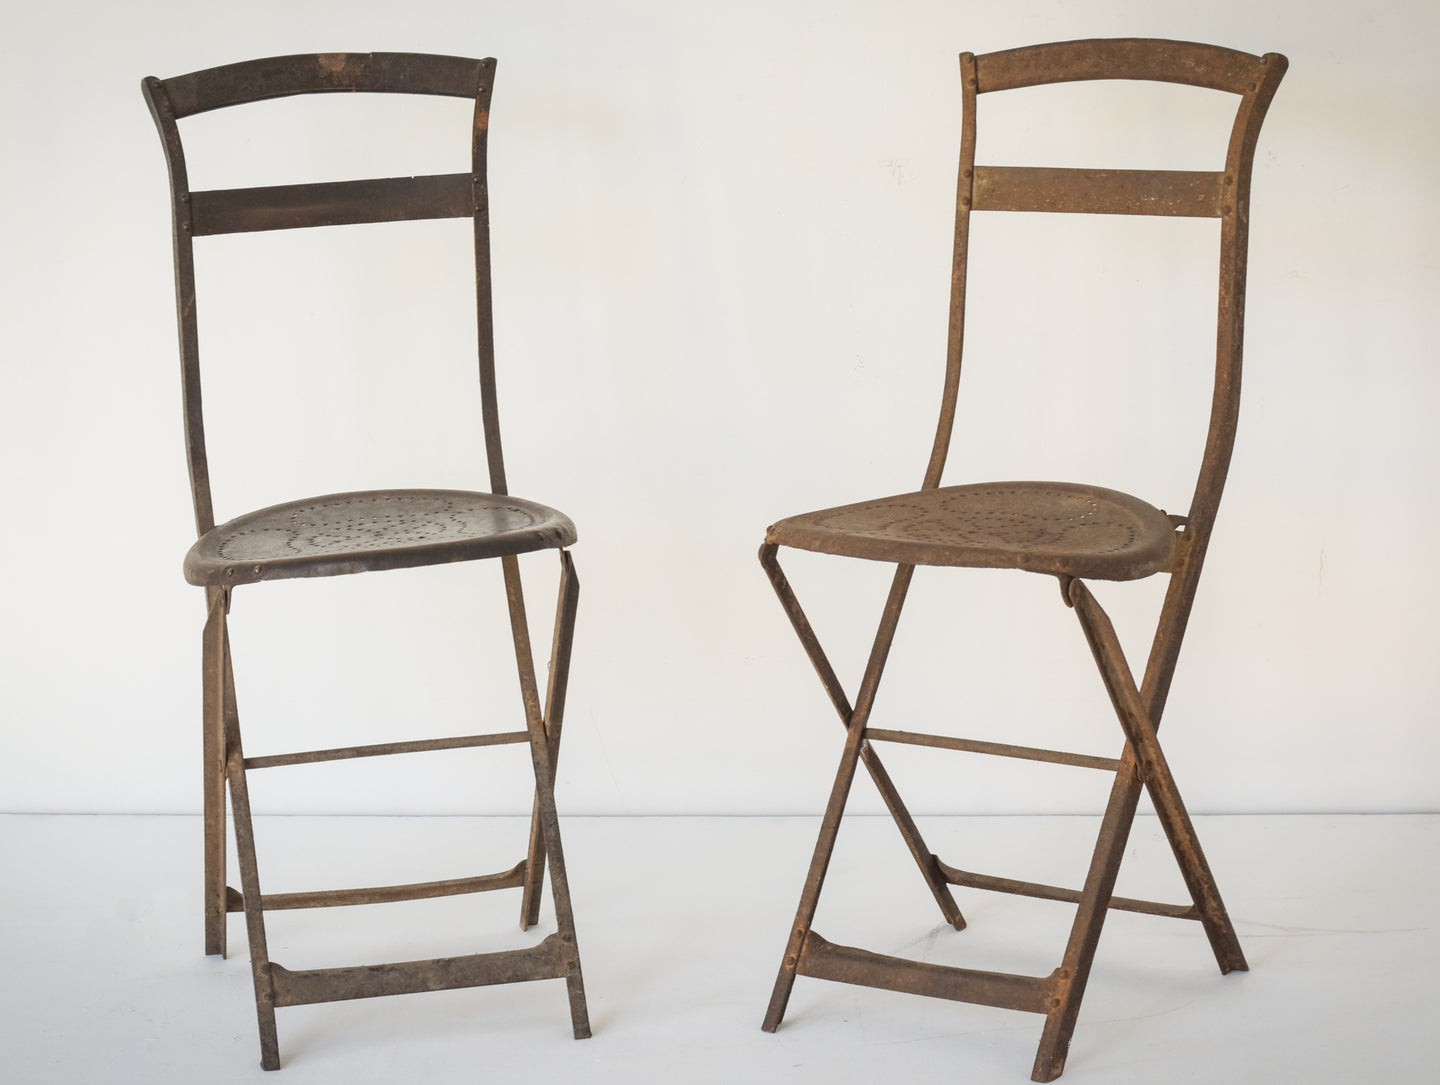 Elegant Antique Pair of French Folding Chairs